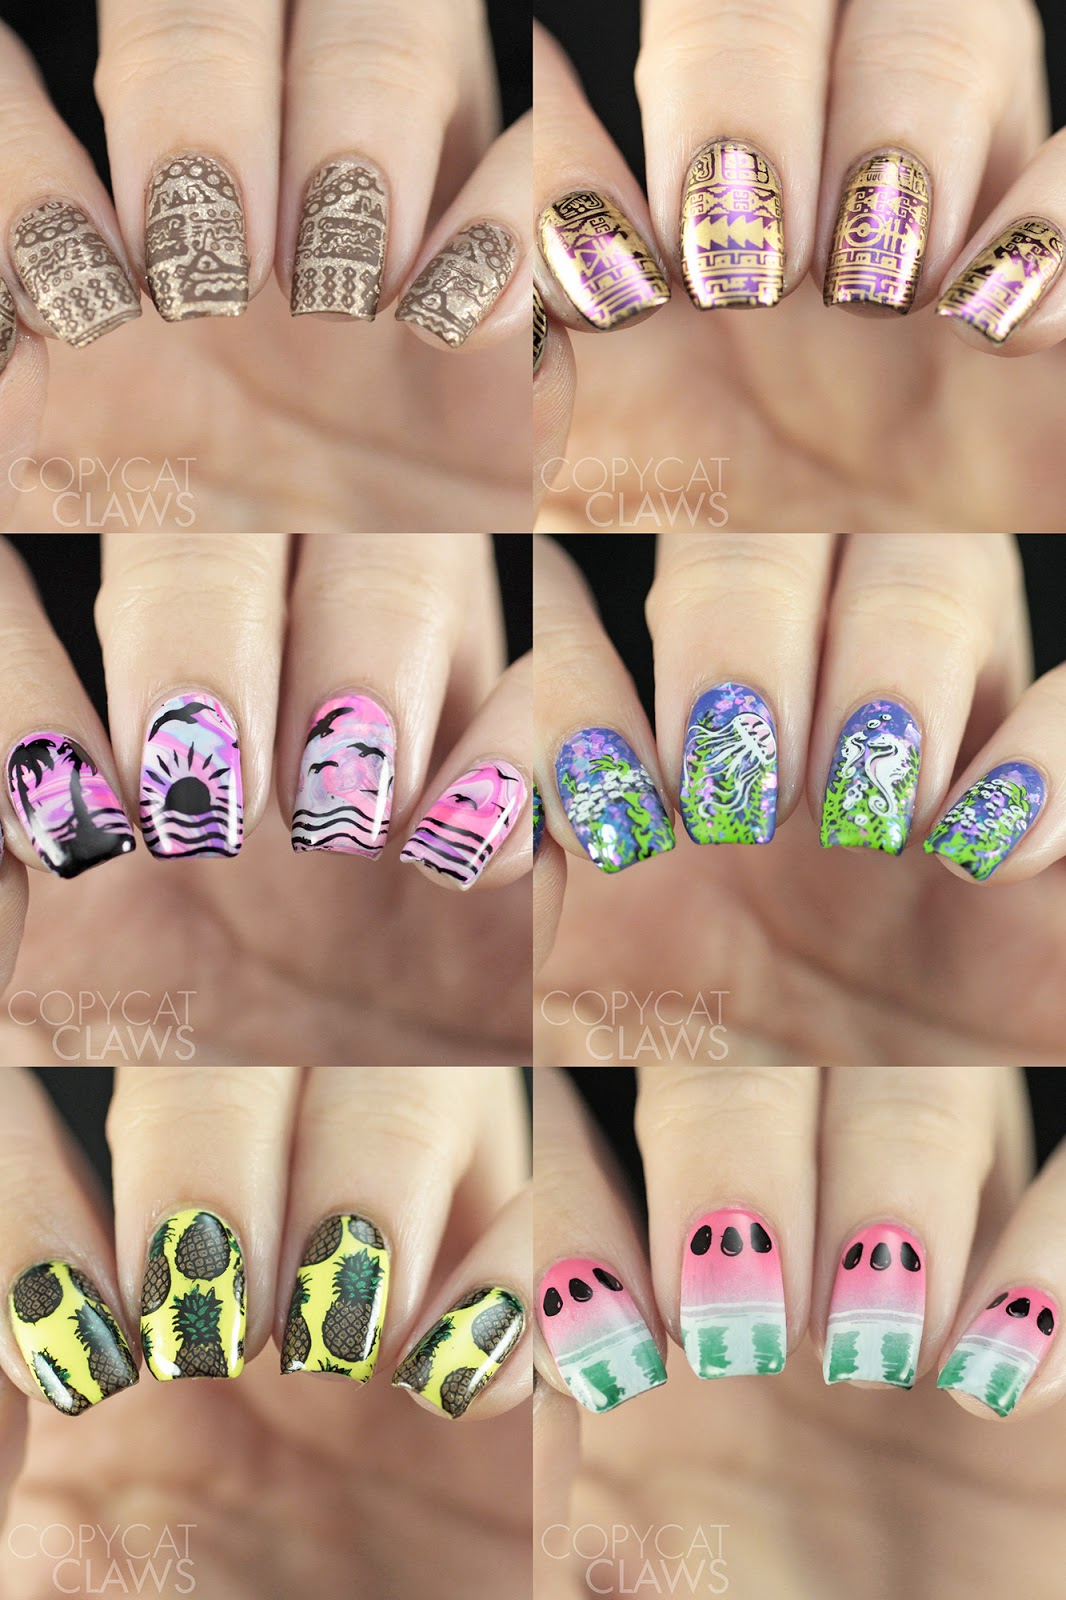 Copycat Claws: Whats Up Nails Stamping Plates...and more!